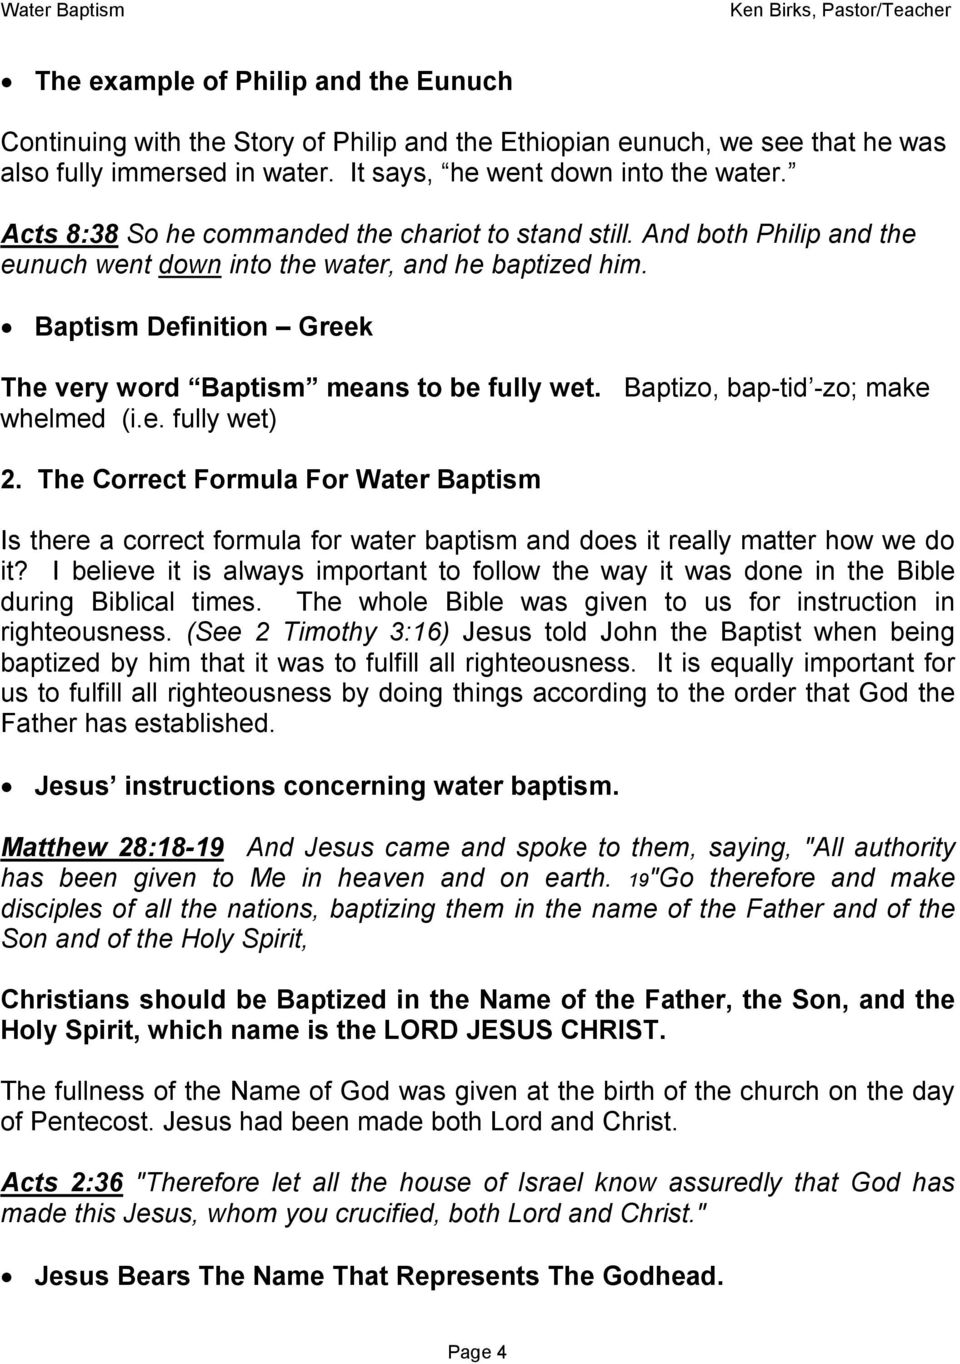 Baptism Definition Greek The very word Baptism means to be fully wet. Baptizo, bap-tid -zo; make whelmed (i.e. fully wet) 2.